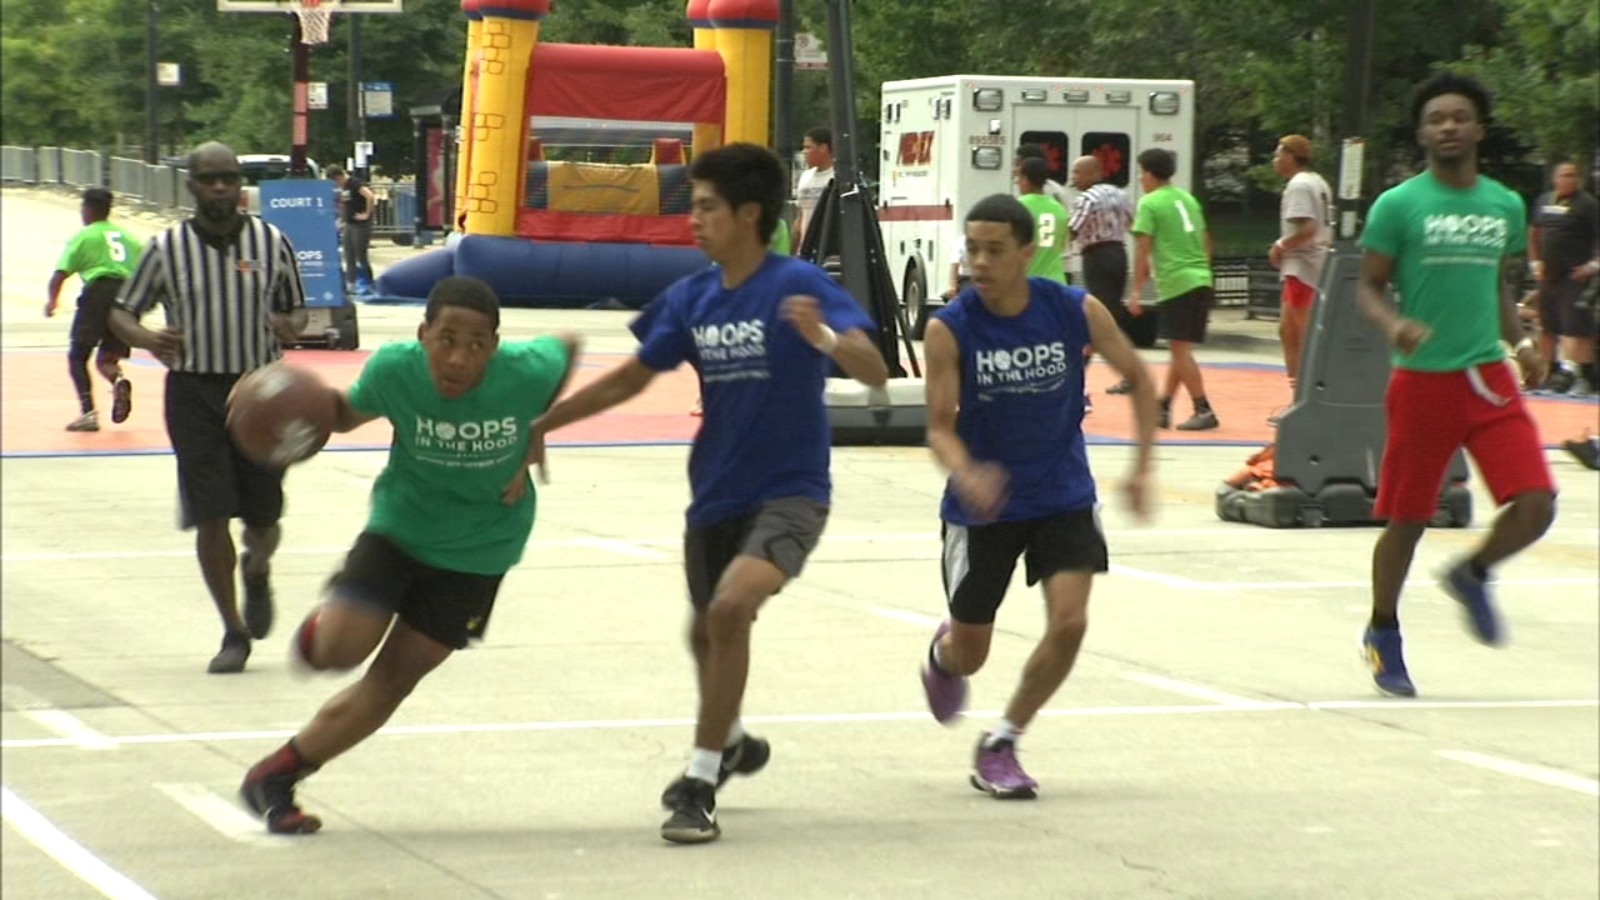 More than 400 kids compete in 'Hoops in the Hood' tournament in downtown Chicago